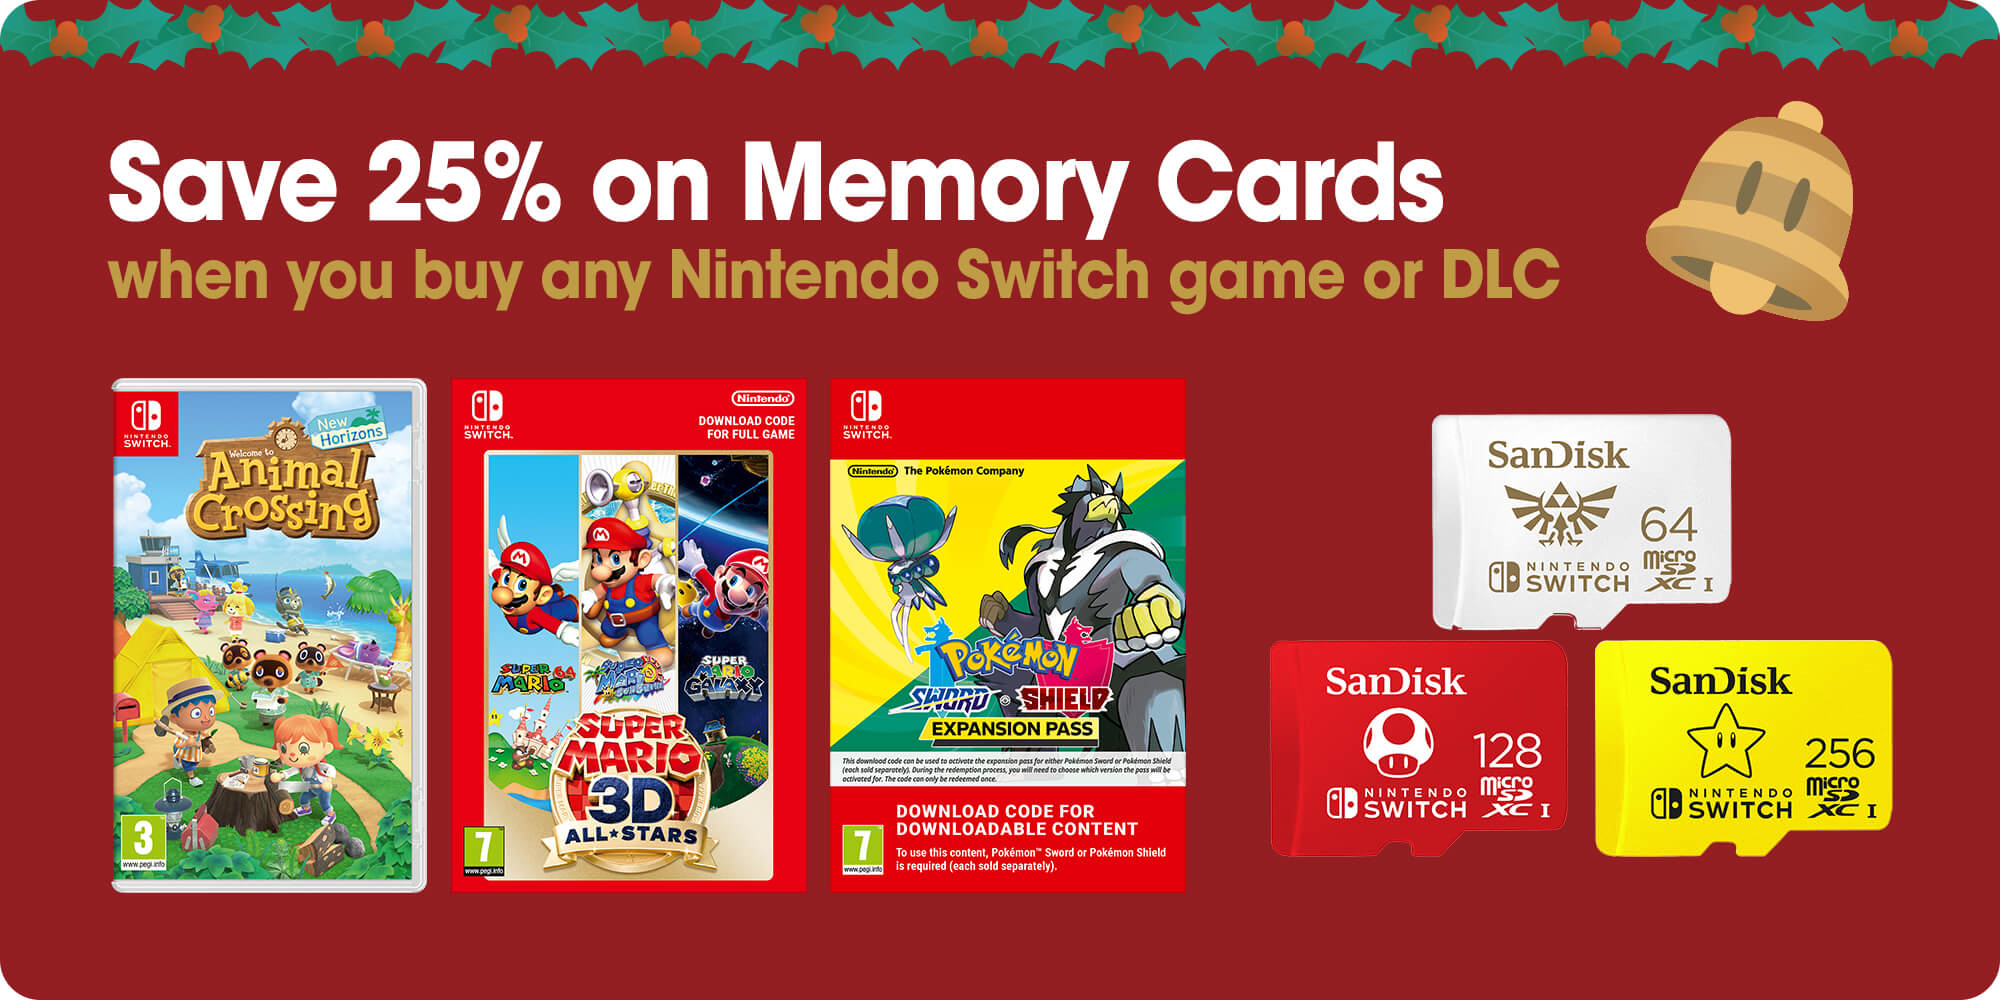 Save 25% on Memory Cards when you buy any Nintendo Switch game or DLC